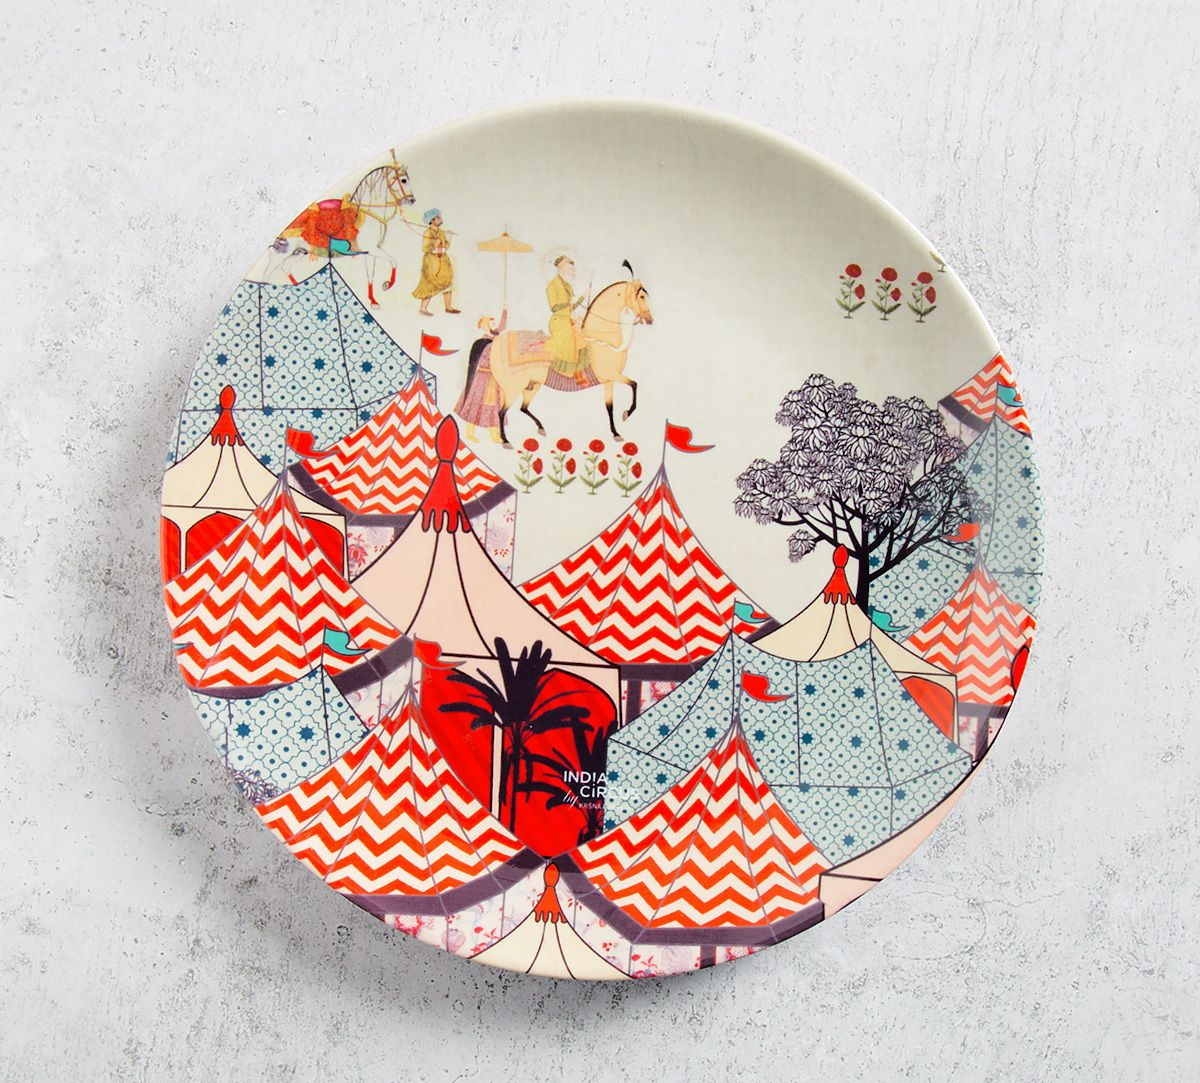 Medieval Times 8 inch Decorative and Snacks Platter